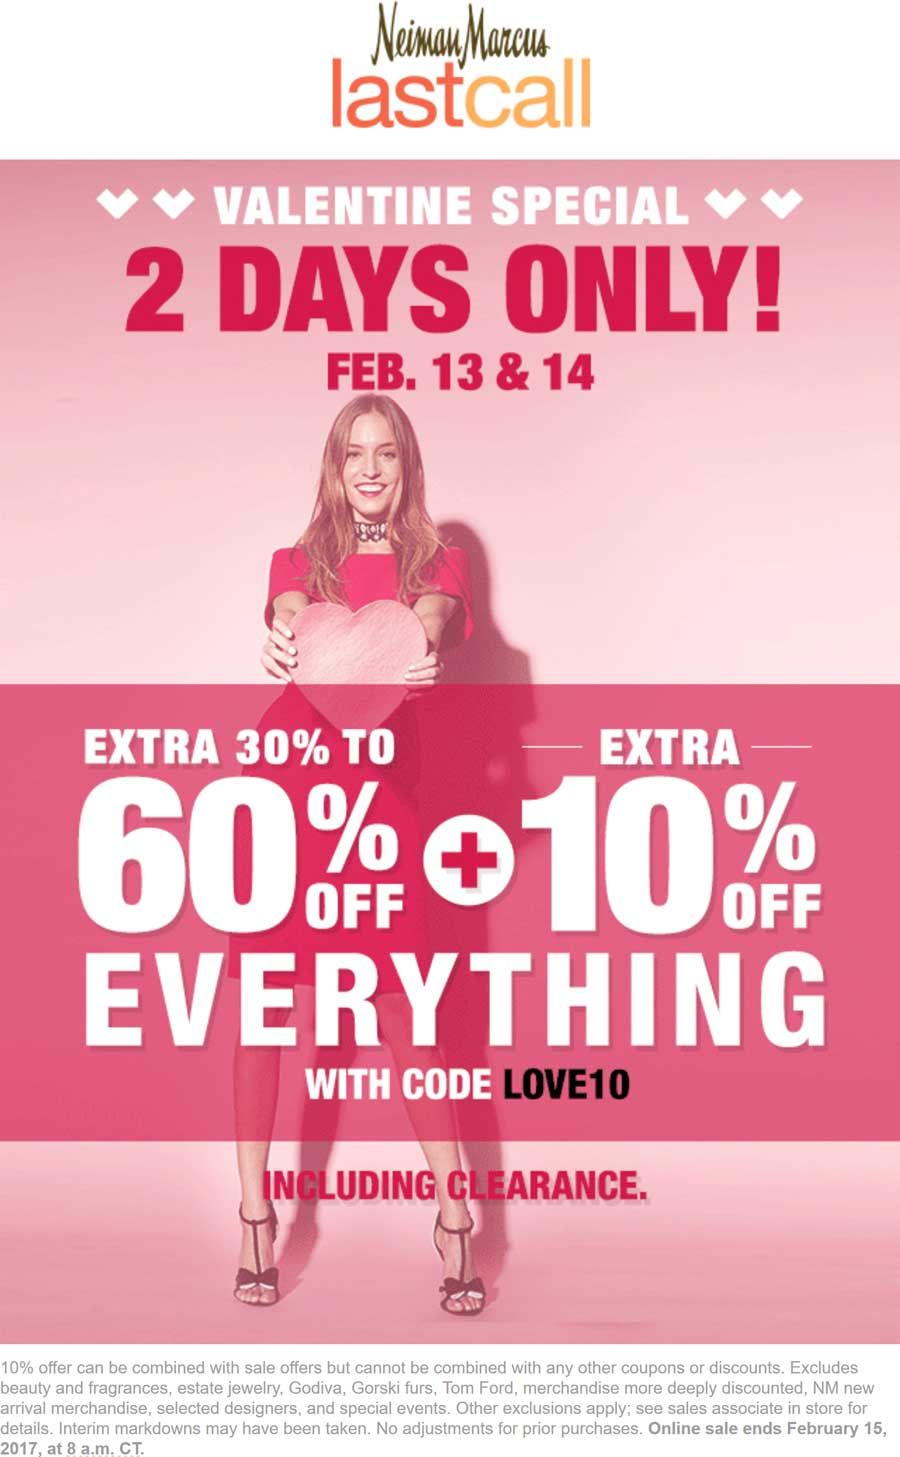 7aa9d0d94 Pinned February 13th  40-70% off everything at Nieman Marcus  LastCall or  online via promo code LOVE10  TheCouponsApp